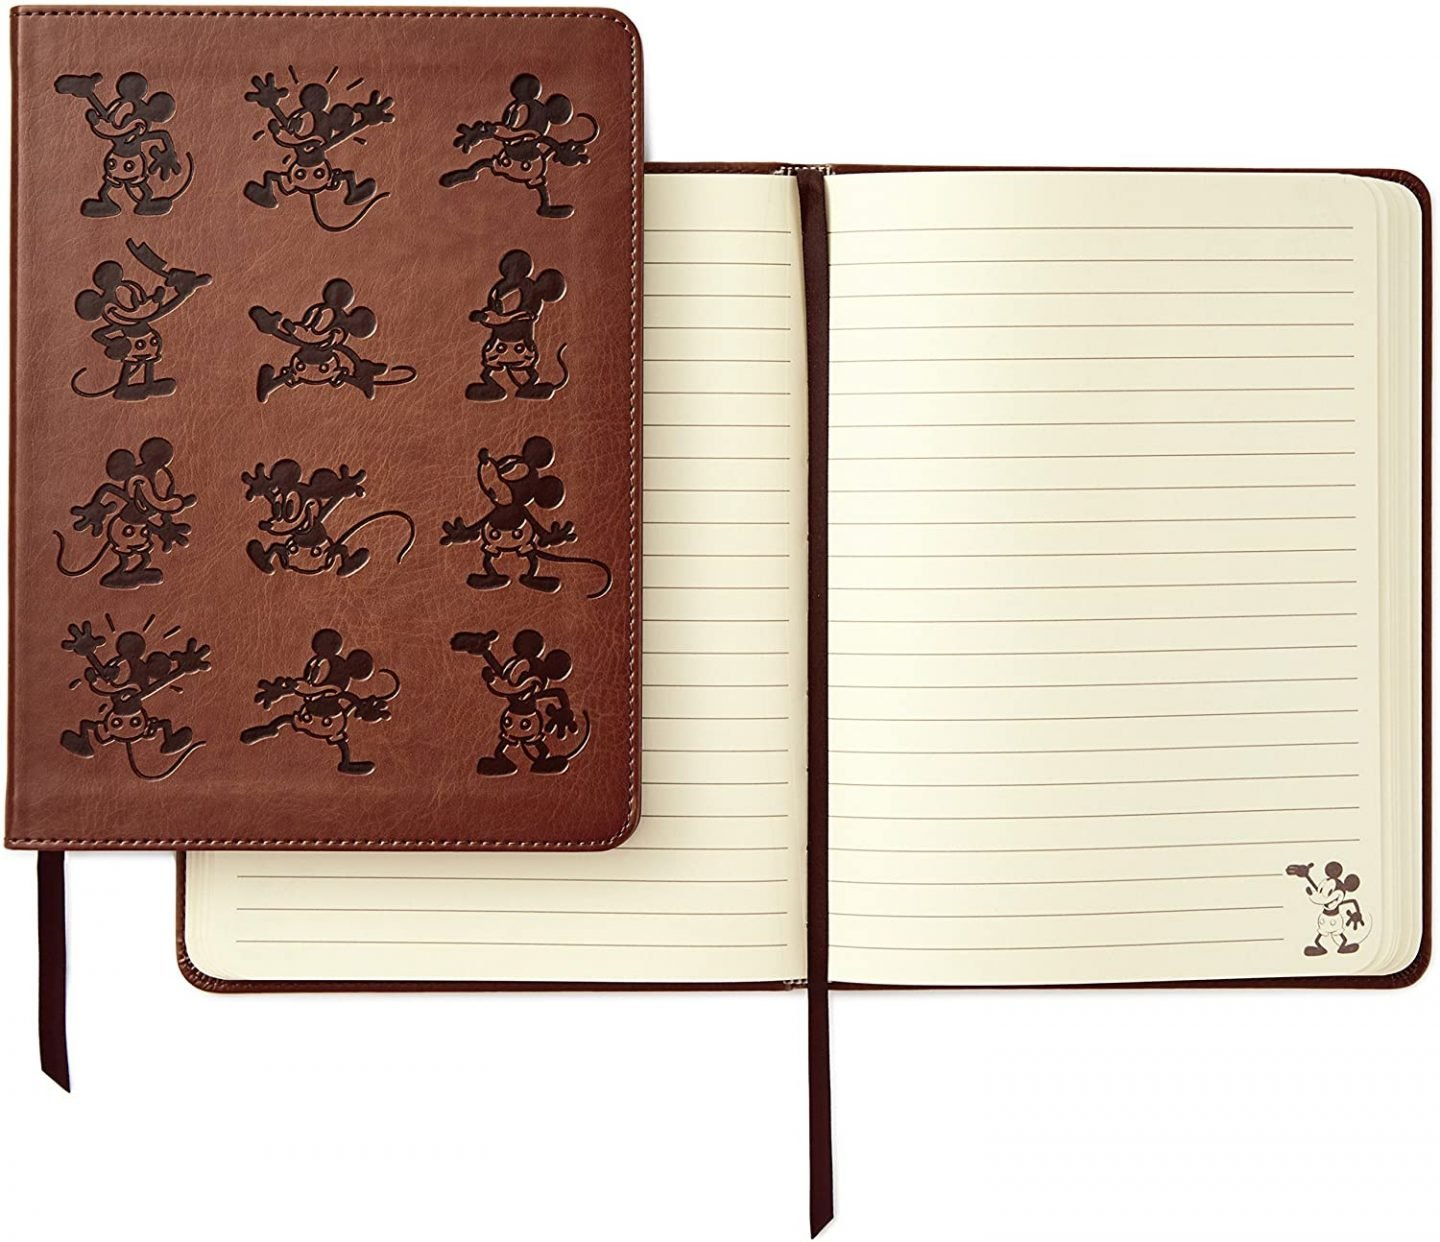 Disney Gifts for Disney Fans Journals